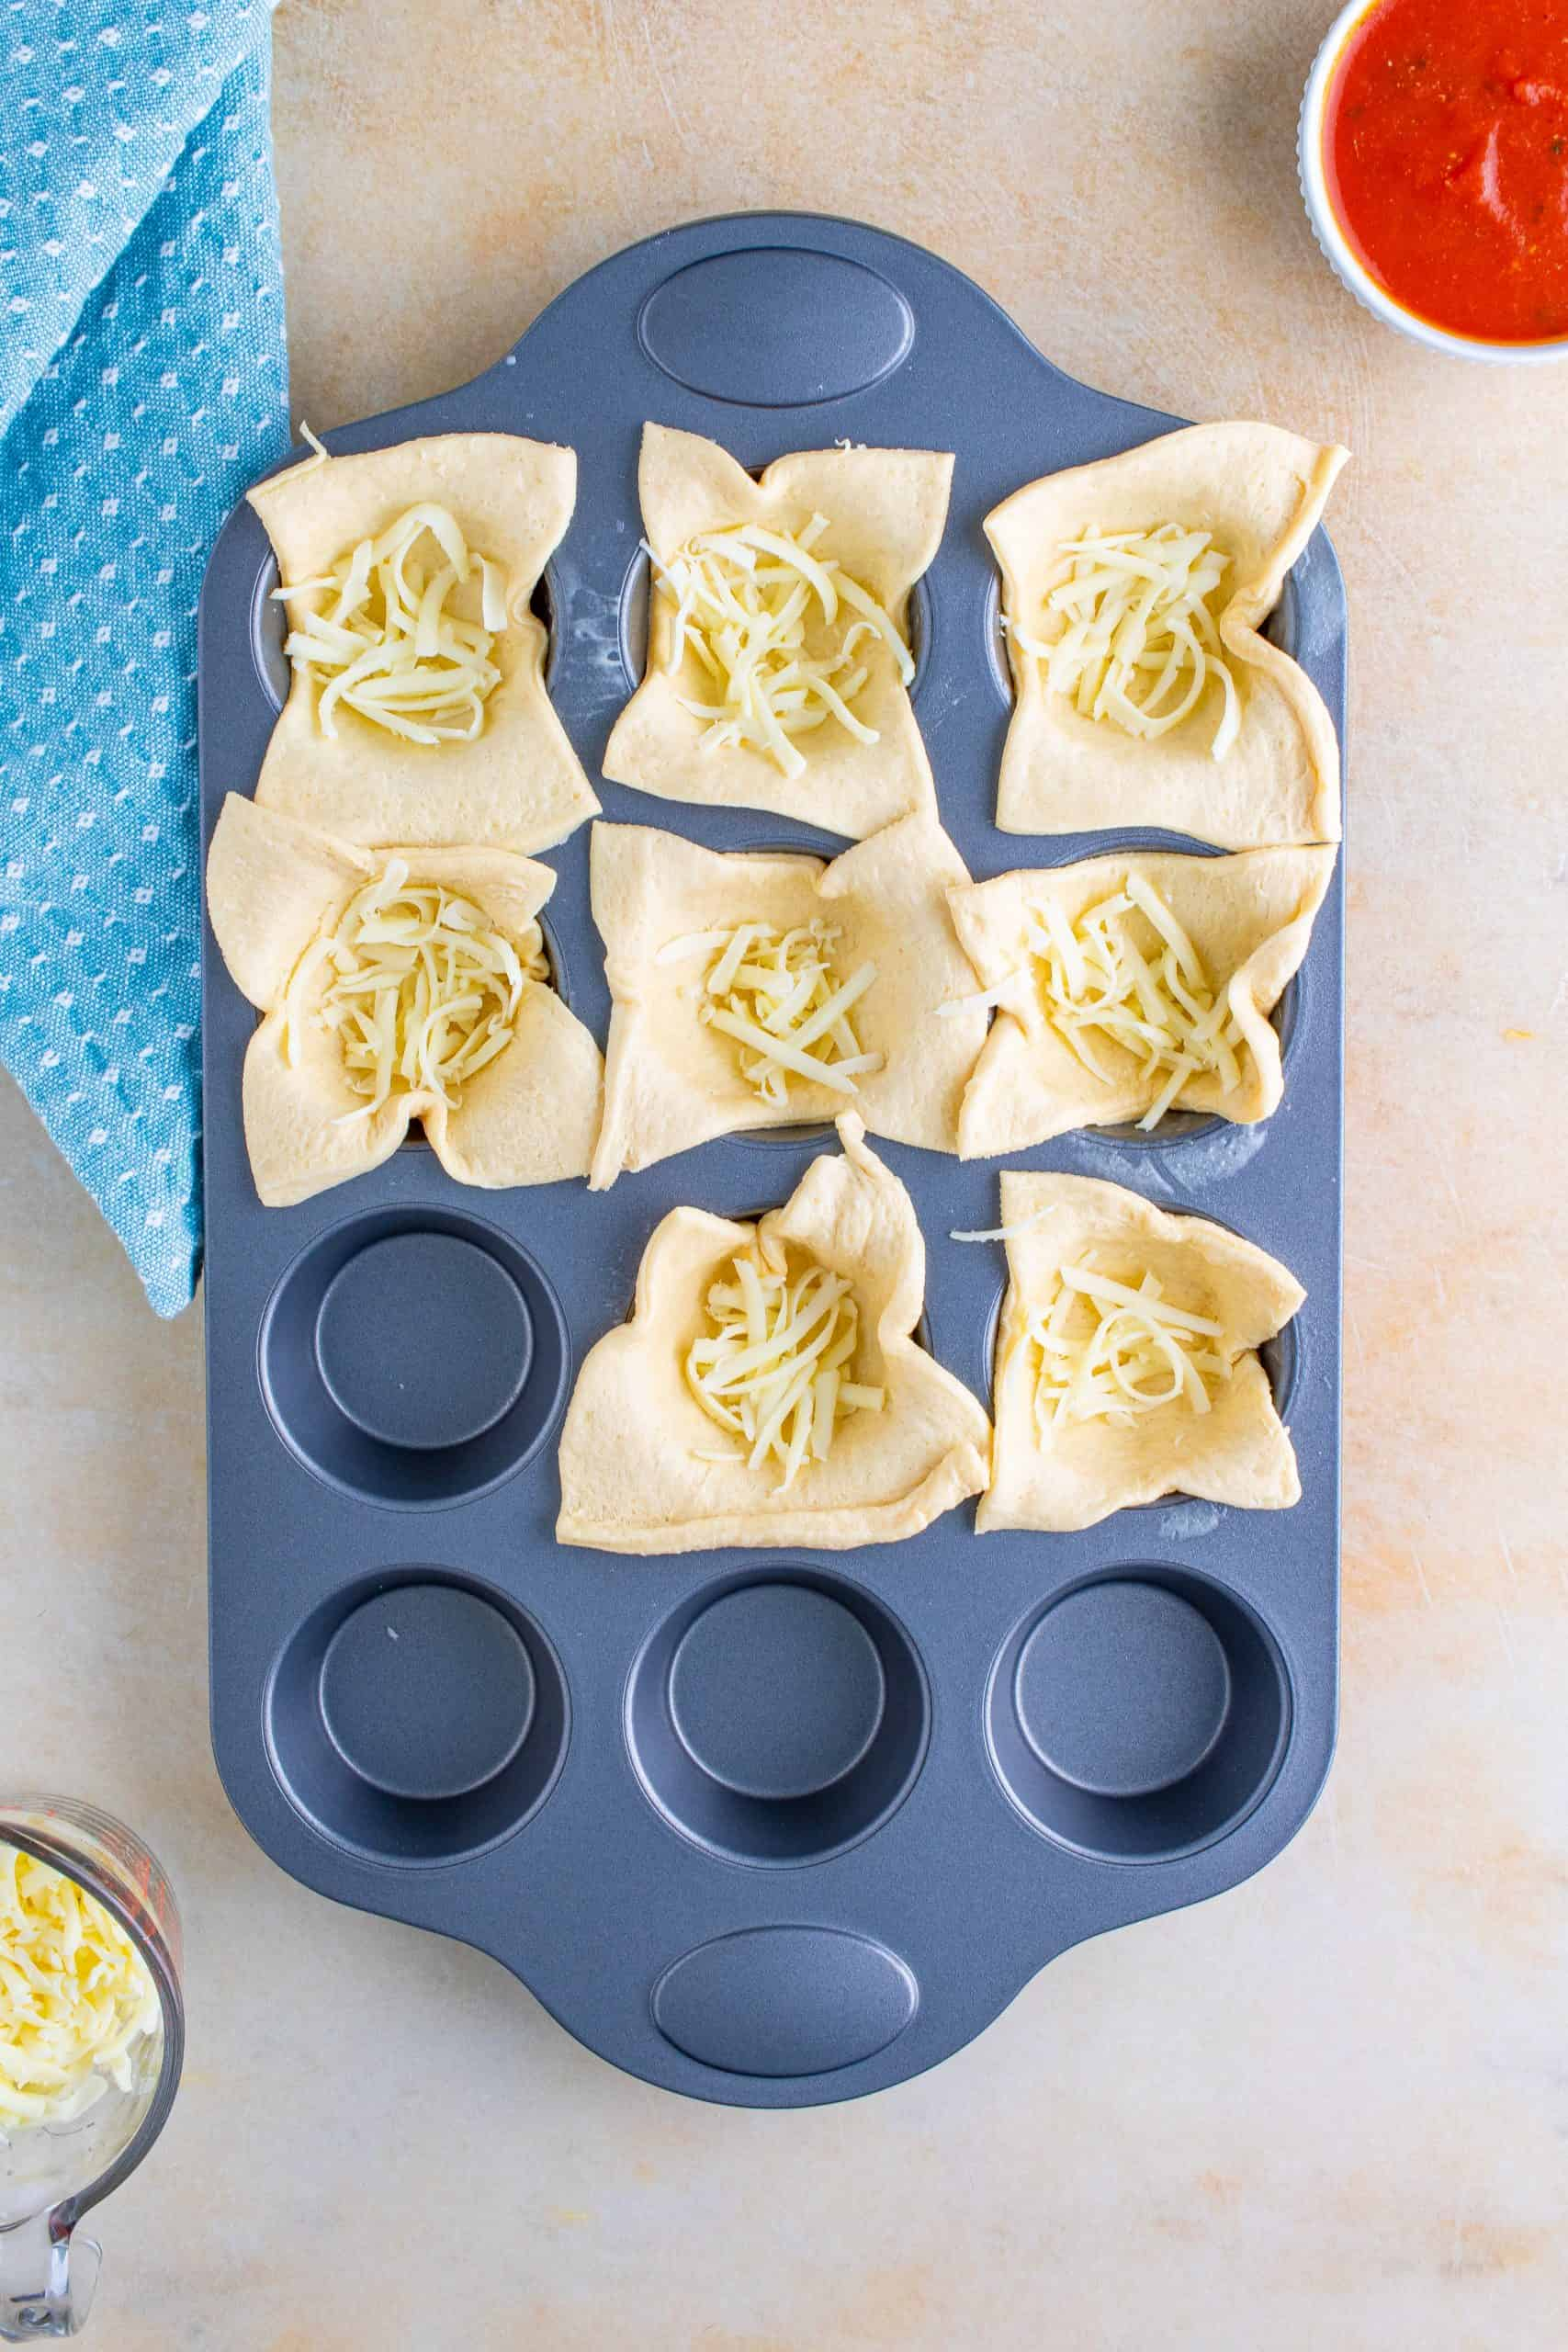 Cheese added to crescent rolls in muffin tin.